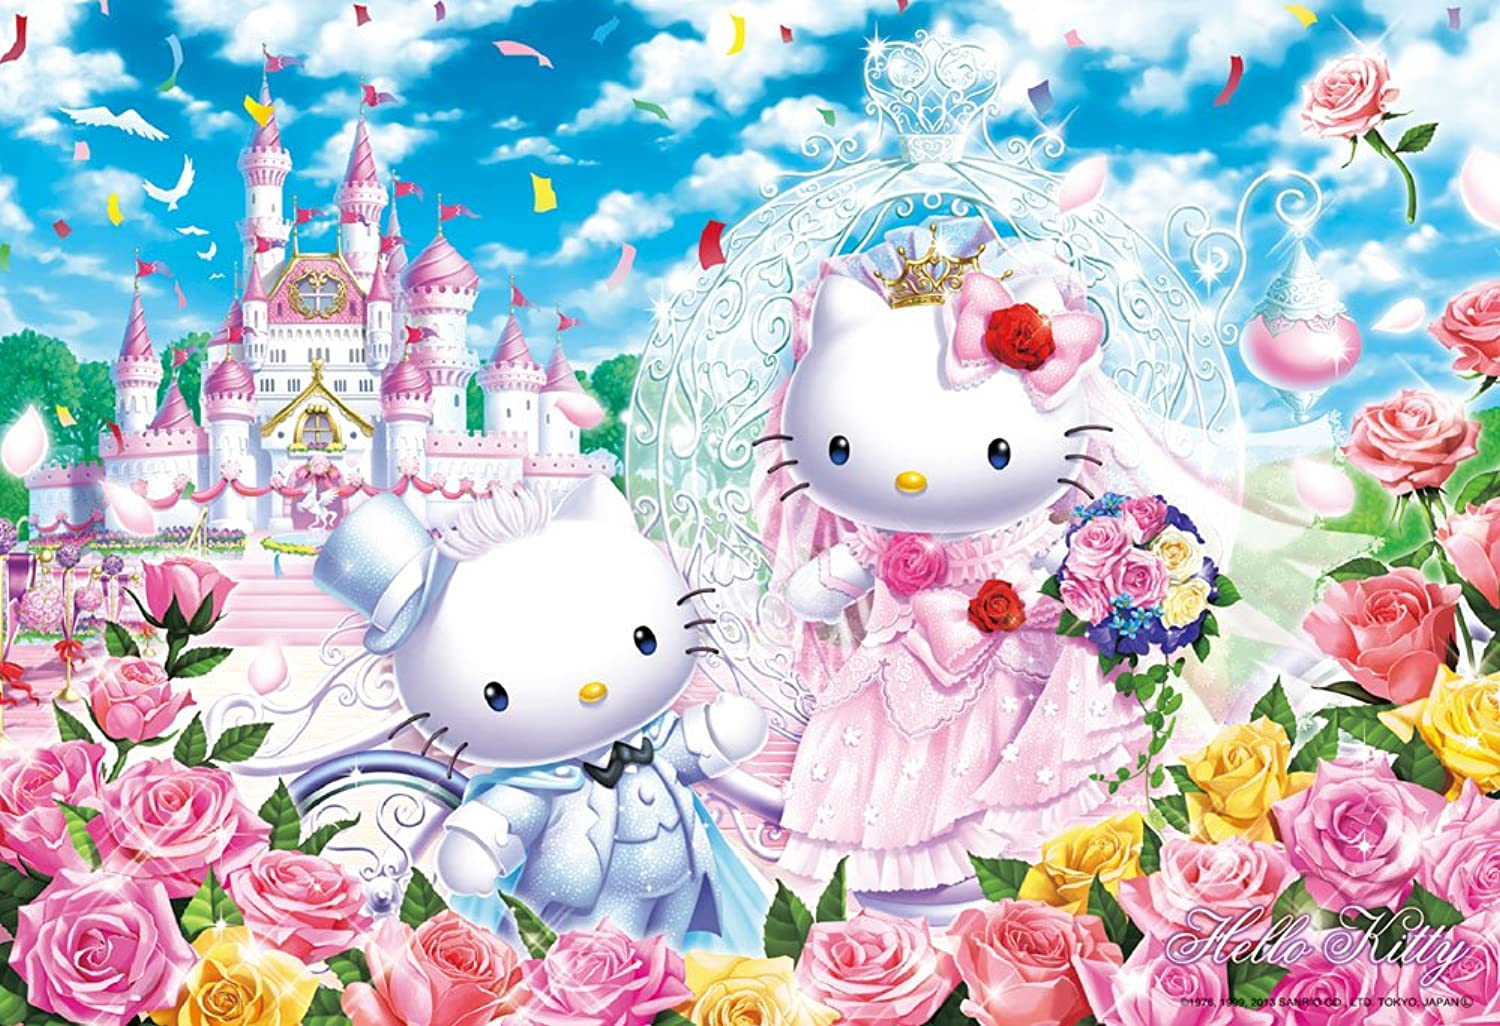 Hello Kitty 300 Piece Castle Wedding 33067 (japan import)